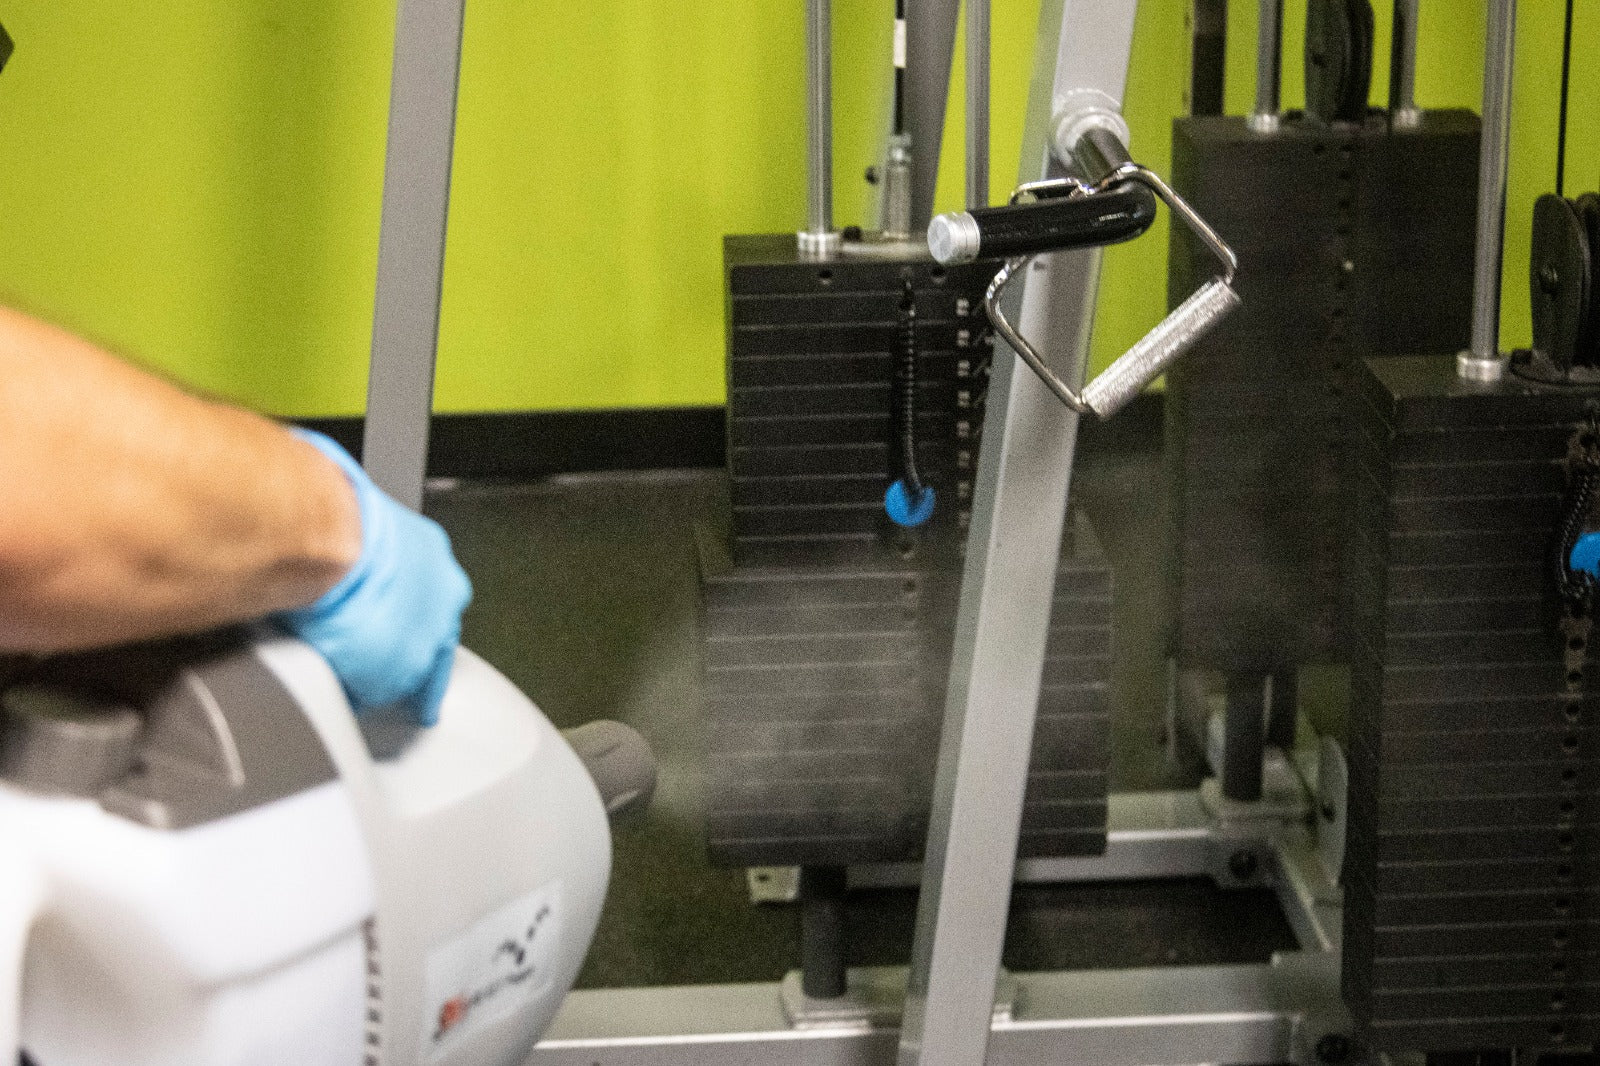 Disinfectant Fogger spraying in a gym